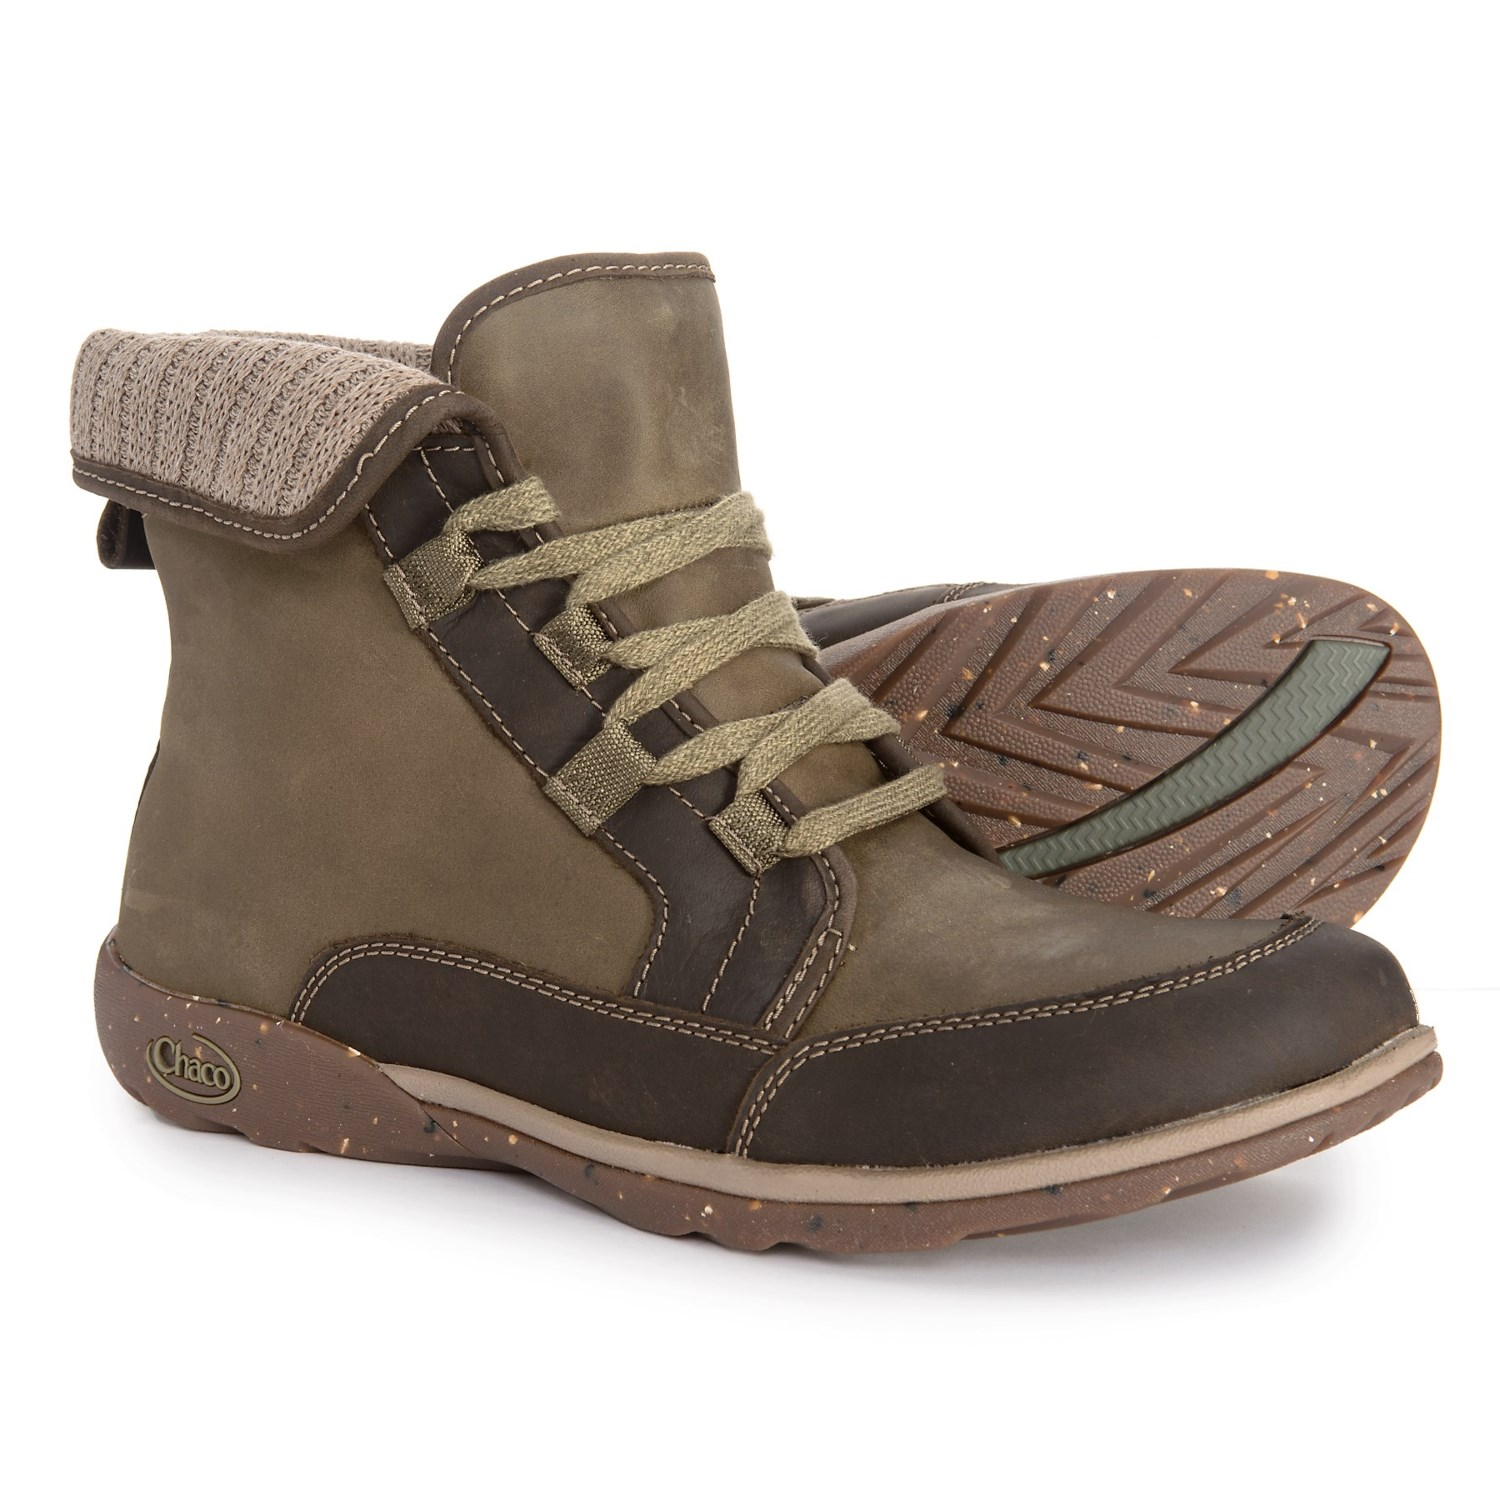 3325fbf497c Chaco Barbary Boots - Leather (For Women)